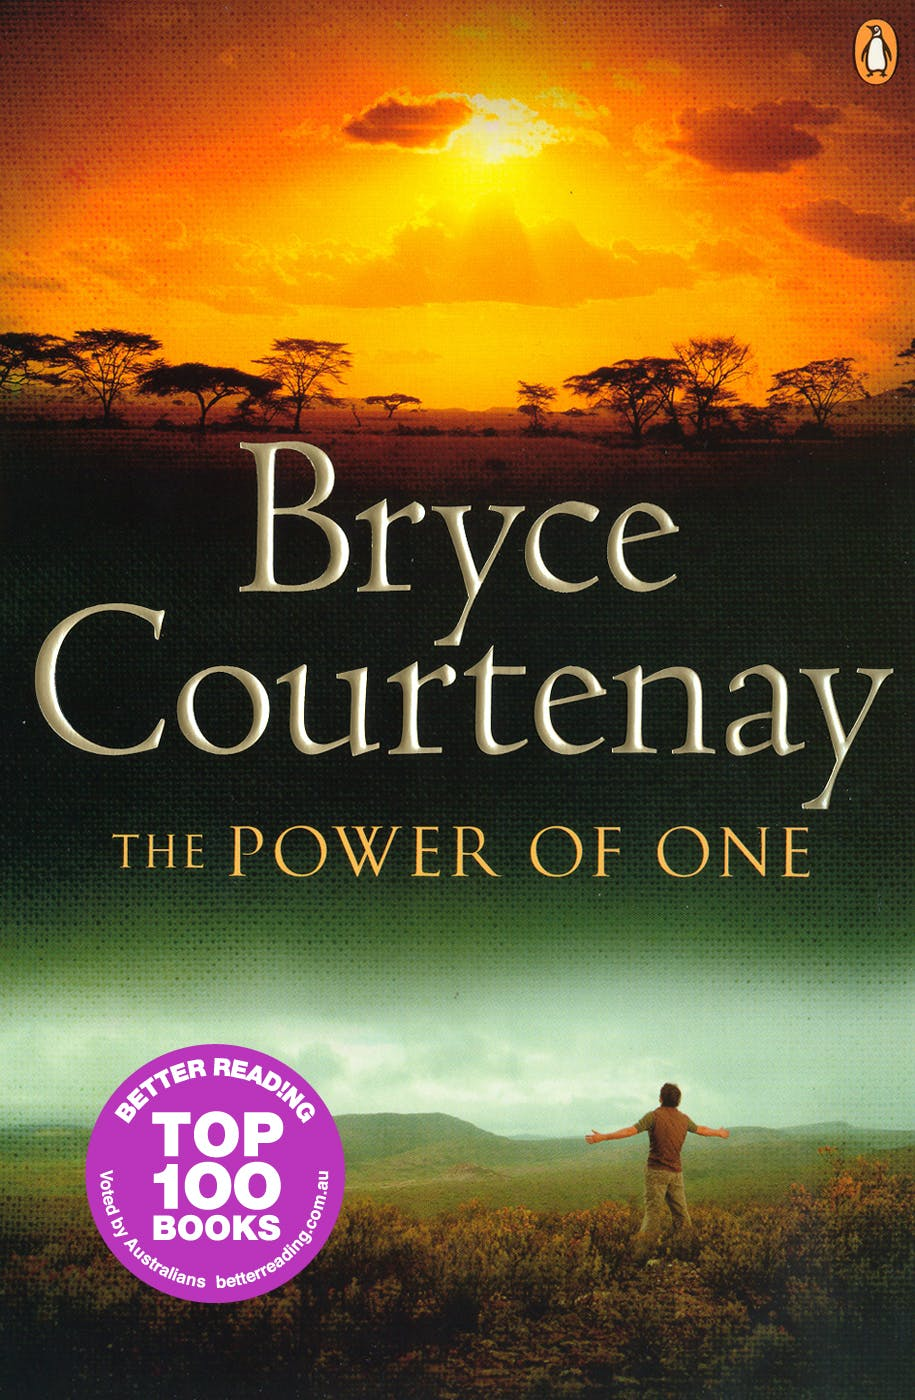 Bryce Courtenay, The Power of One